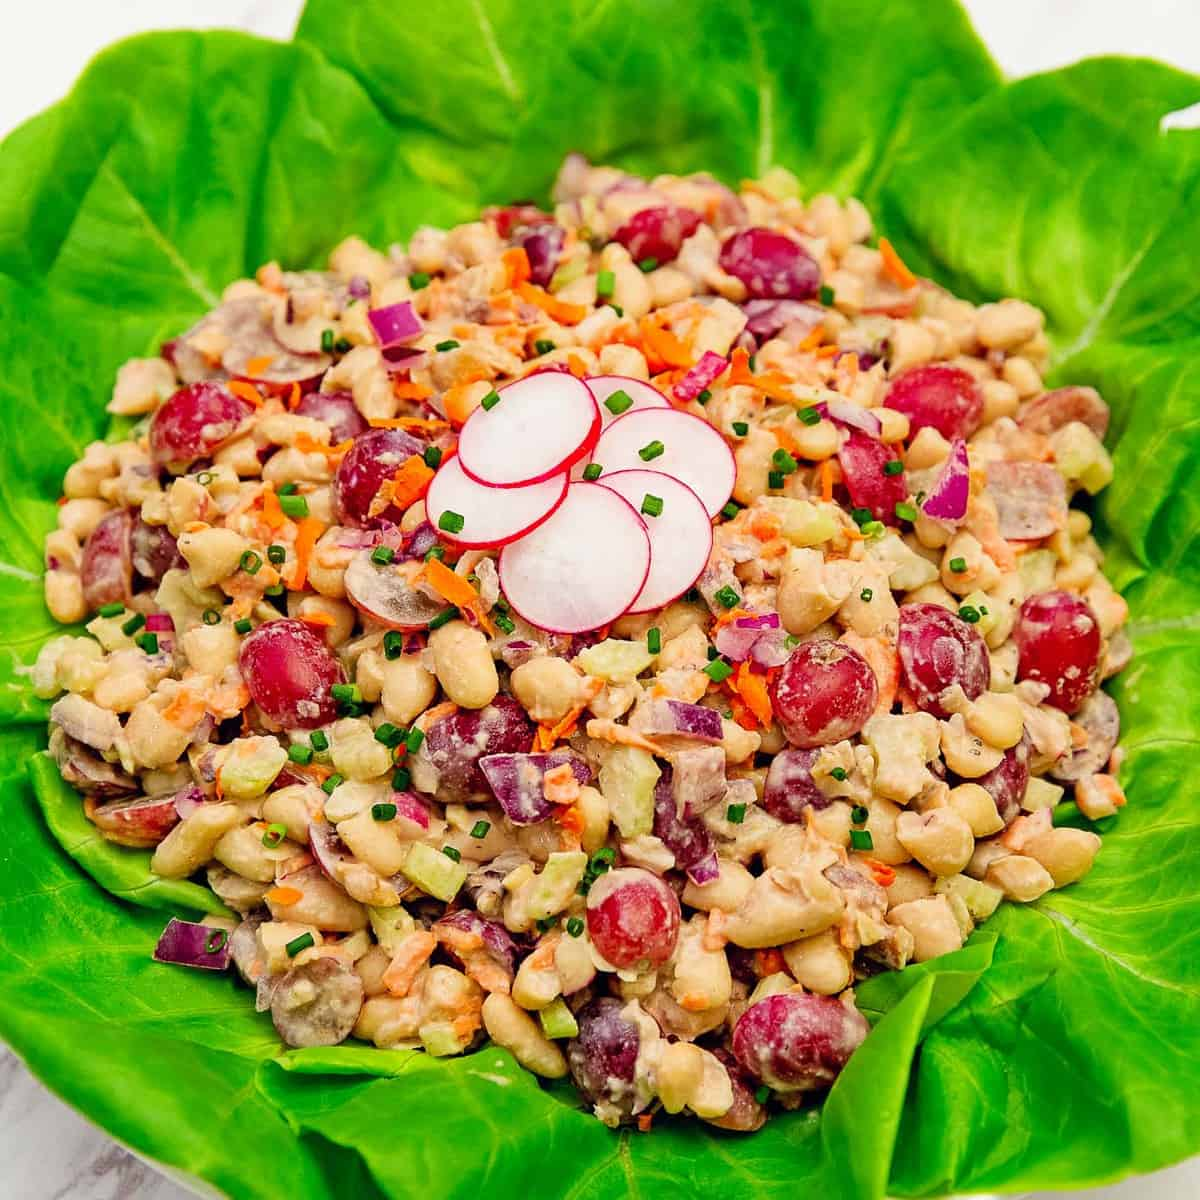 Waldorf salad, salad, white beans, grapes, walnuts, tahini, vegan, vegetarian, whole food plant based, gluten free, recipe, wfpb, healthy, oil free, no refined sugar, no oil, refined sugar free, lunch, dinner, side, sauce, easy, fast, quick, dinner party, entertaining, picnic, fun salad, lettuce cups, lettuce wraps, dinner party, holiday, special, Thanksgiving salad, Christmas salad